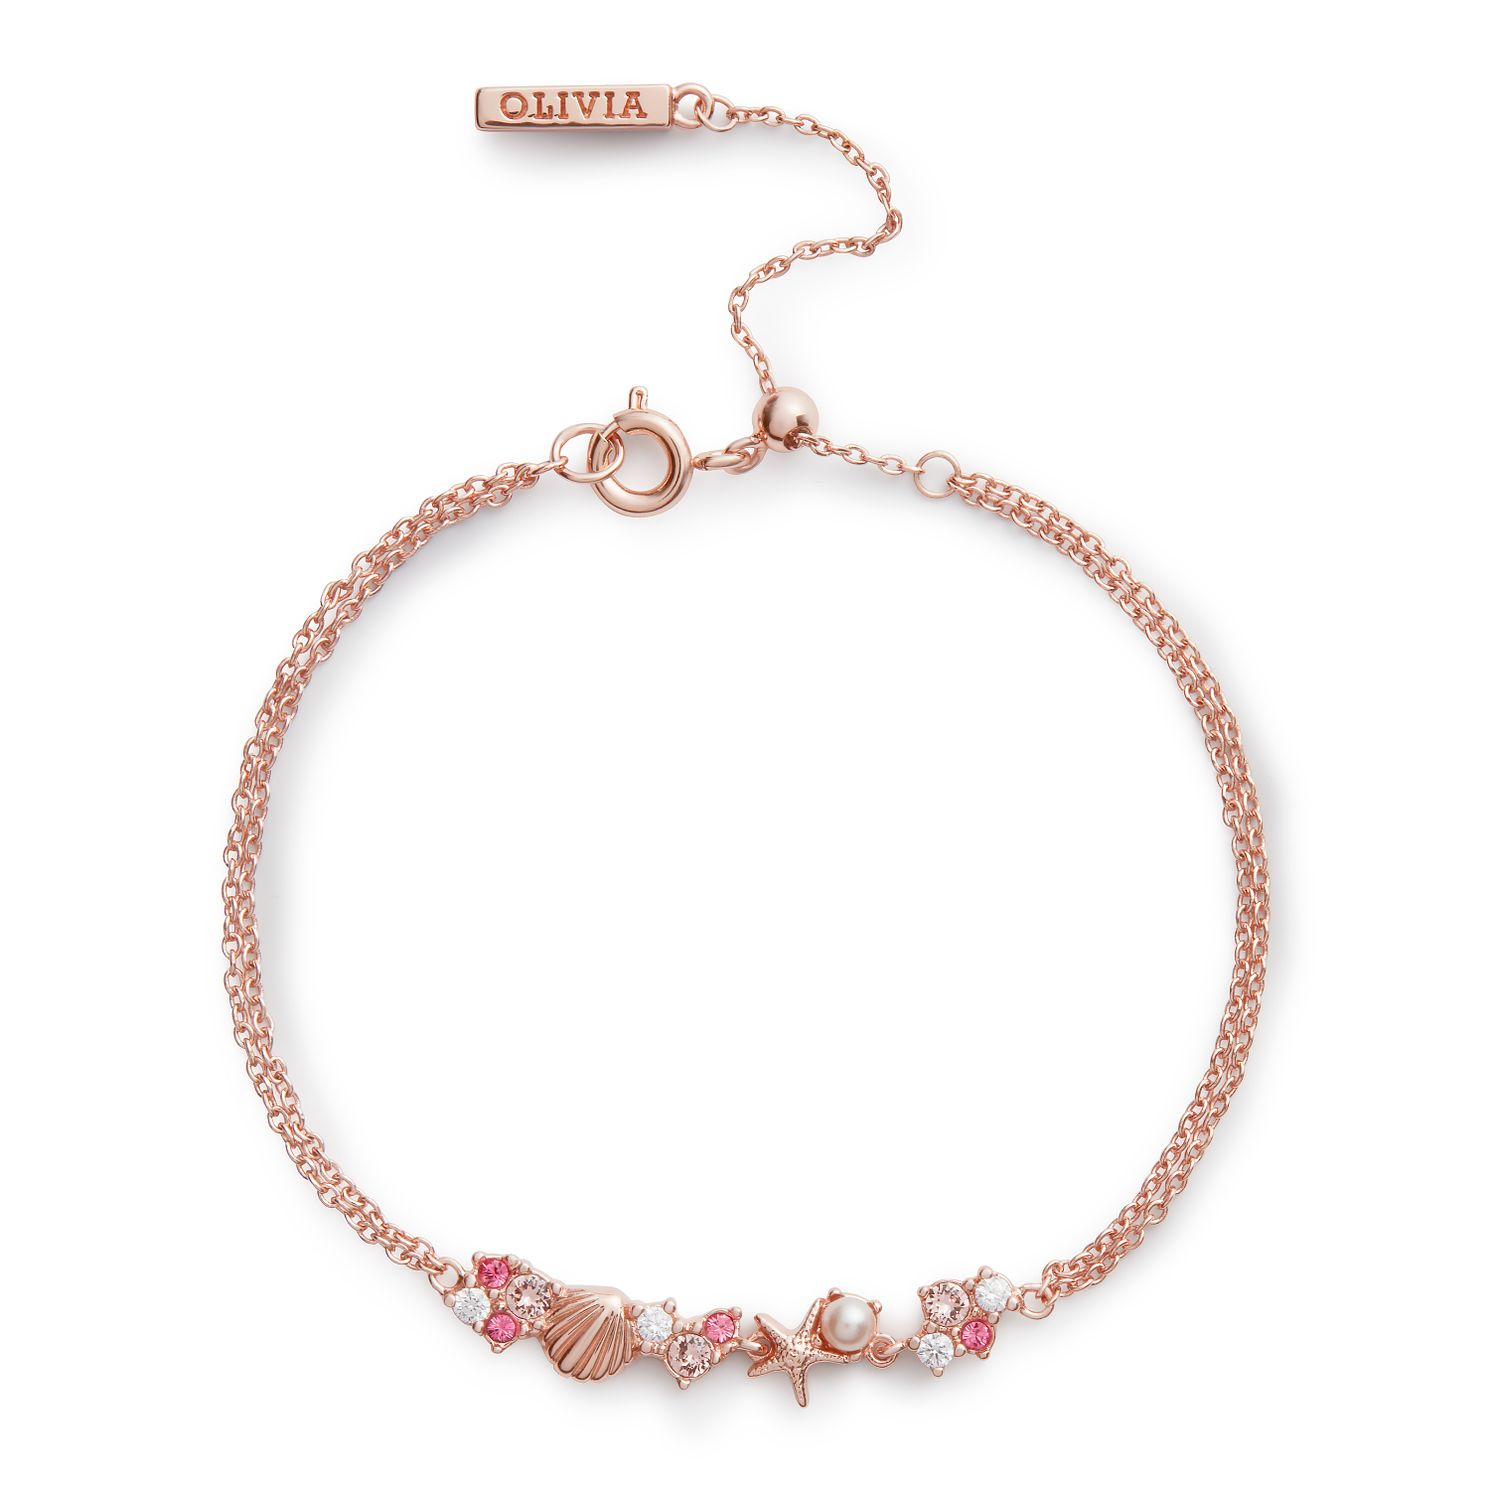 Olivia Burton Under The Sea Rose Gold Tone Chain Bracelet - Product number 4352726